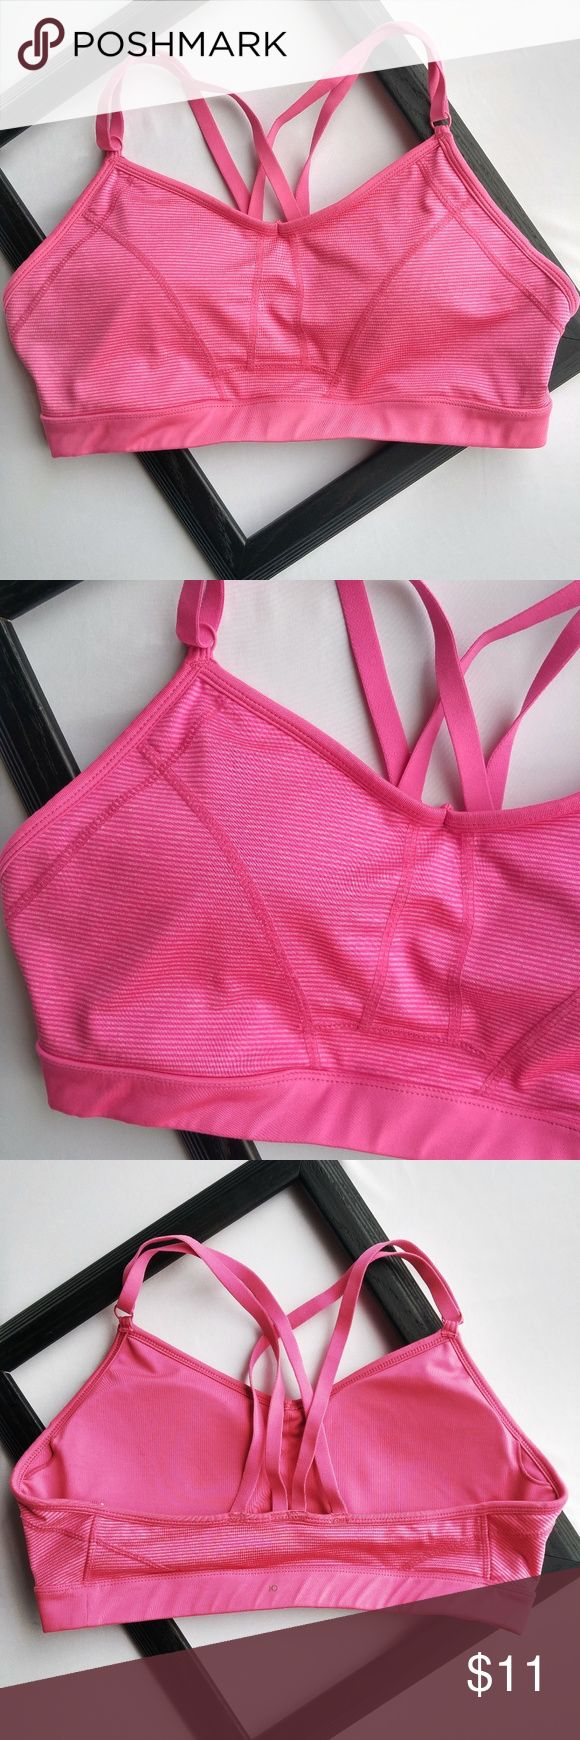 """Jockey Size XL Pink Strappy Striped Sports Bra Very good pre-owned condition- almost like new, no stains, rips, fading, or pilling.  Size XL  Striped pink-on-pink pattern  85% polyester, 15% spandex  15"""" flat across band  17.5"""" armpit to armpit  Removable padding in cups Jockey Intimates & Sleepwear Bras"""